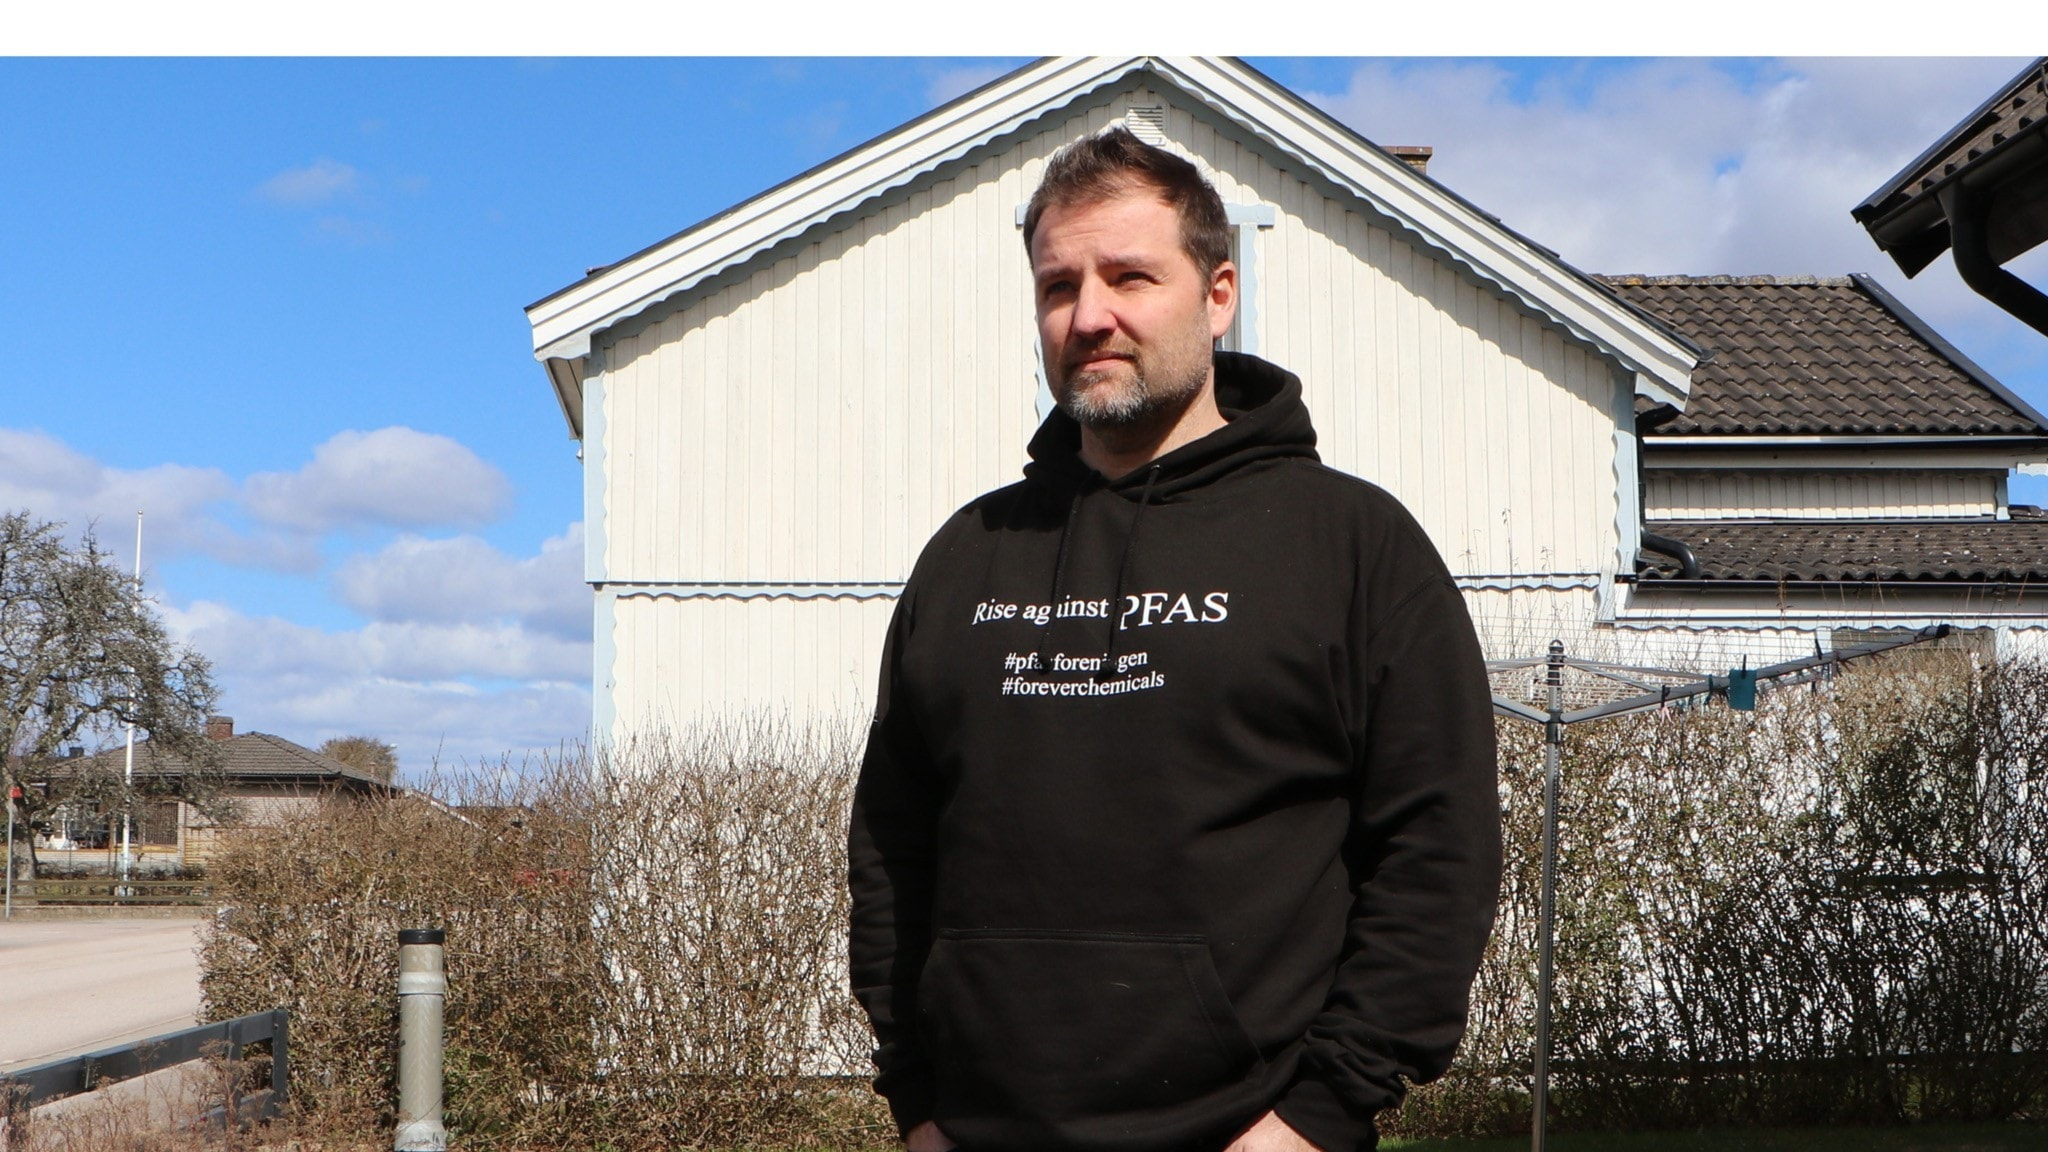 Herman Afzelius, one of over 160 residents in the small town of Kallinge who unknowlingly drank water contaminated with high levels of PFAS for many years.